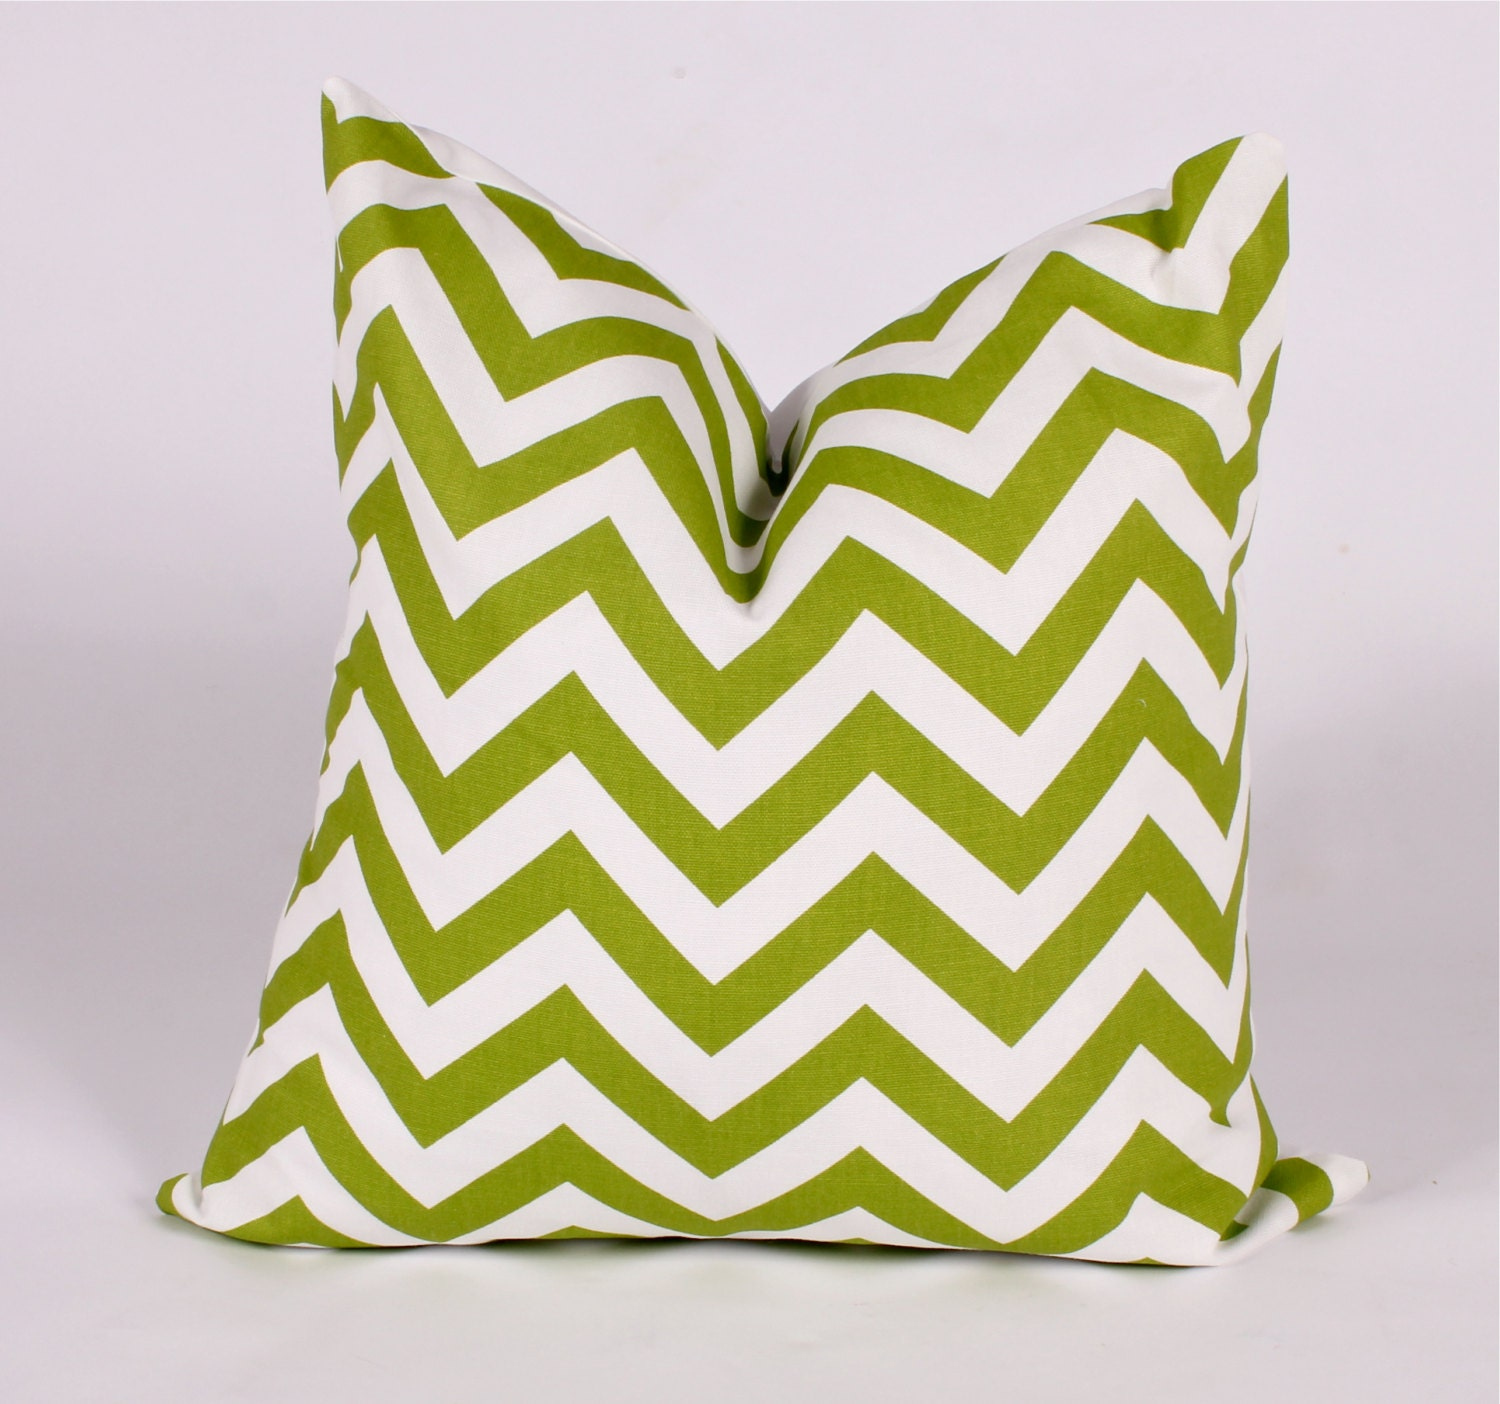 20 x 20 inch Decorative Pillow Cover Chevron by ThePillowPalette